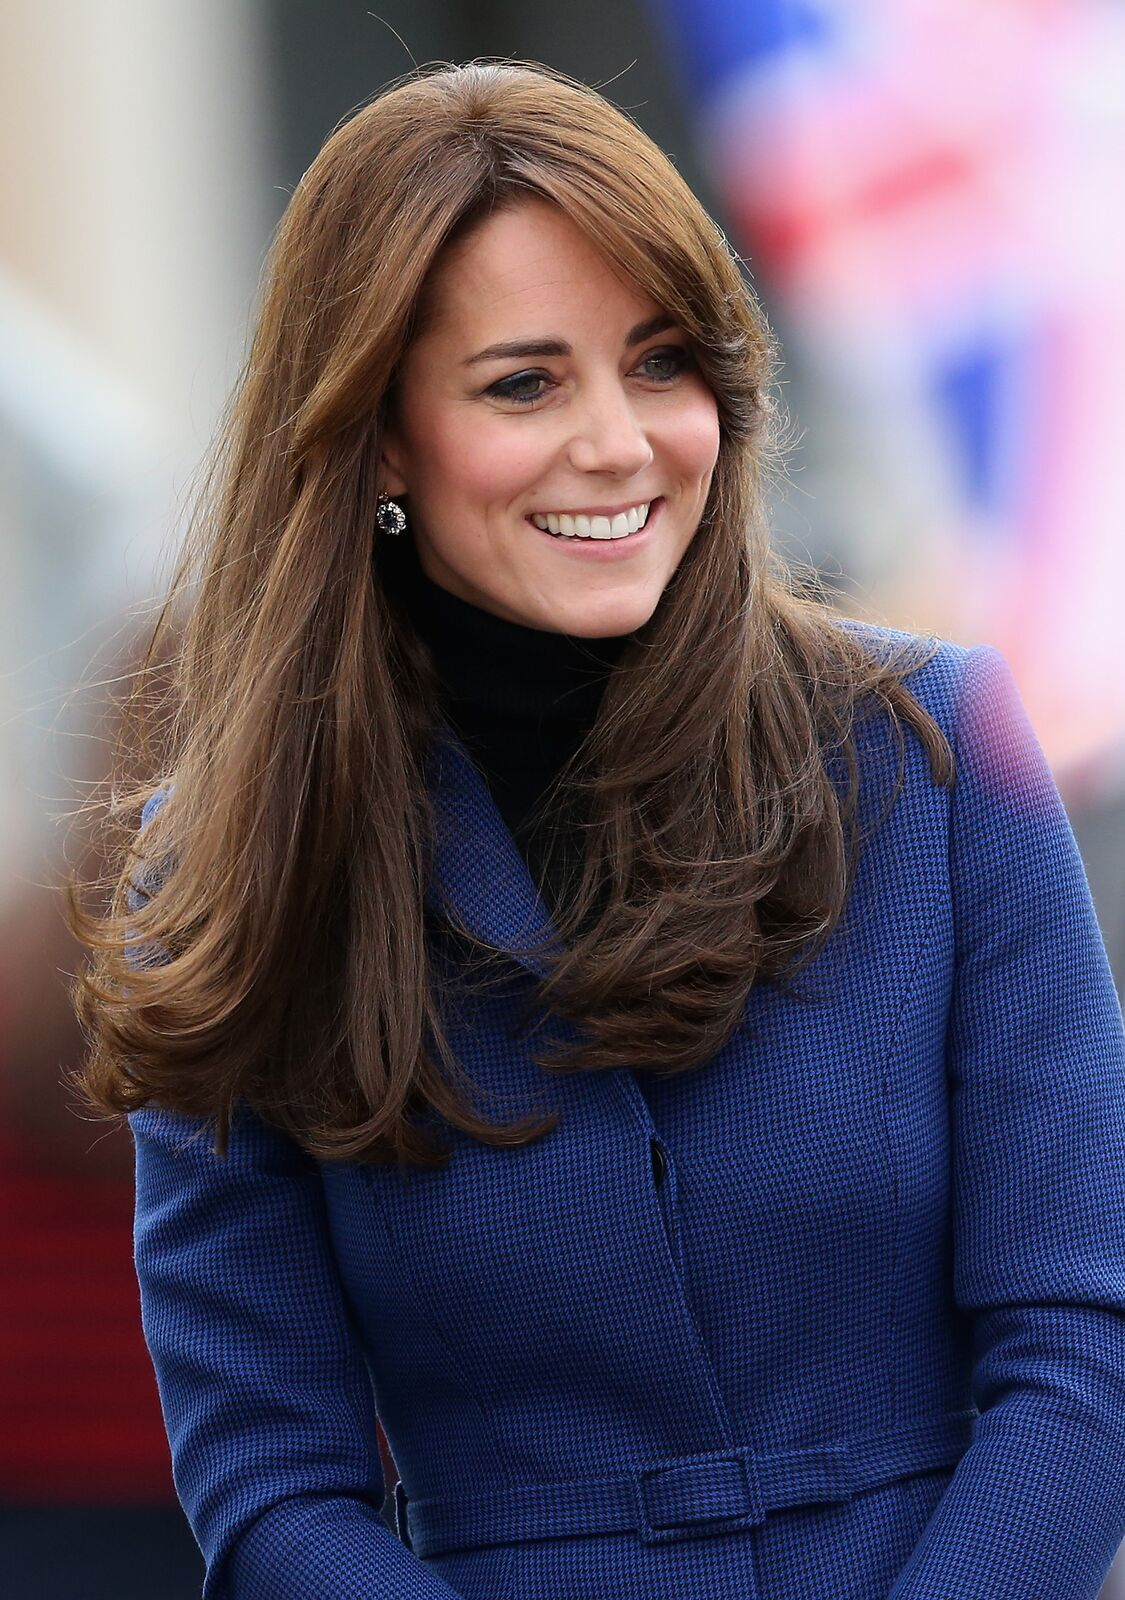 Kate Middleton avec un joli sourire | Photo : Getty Omages